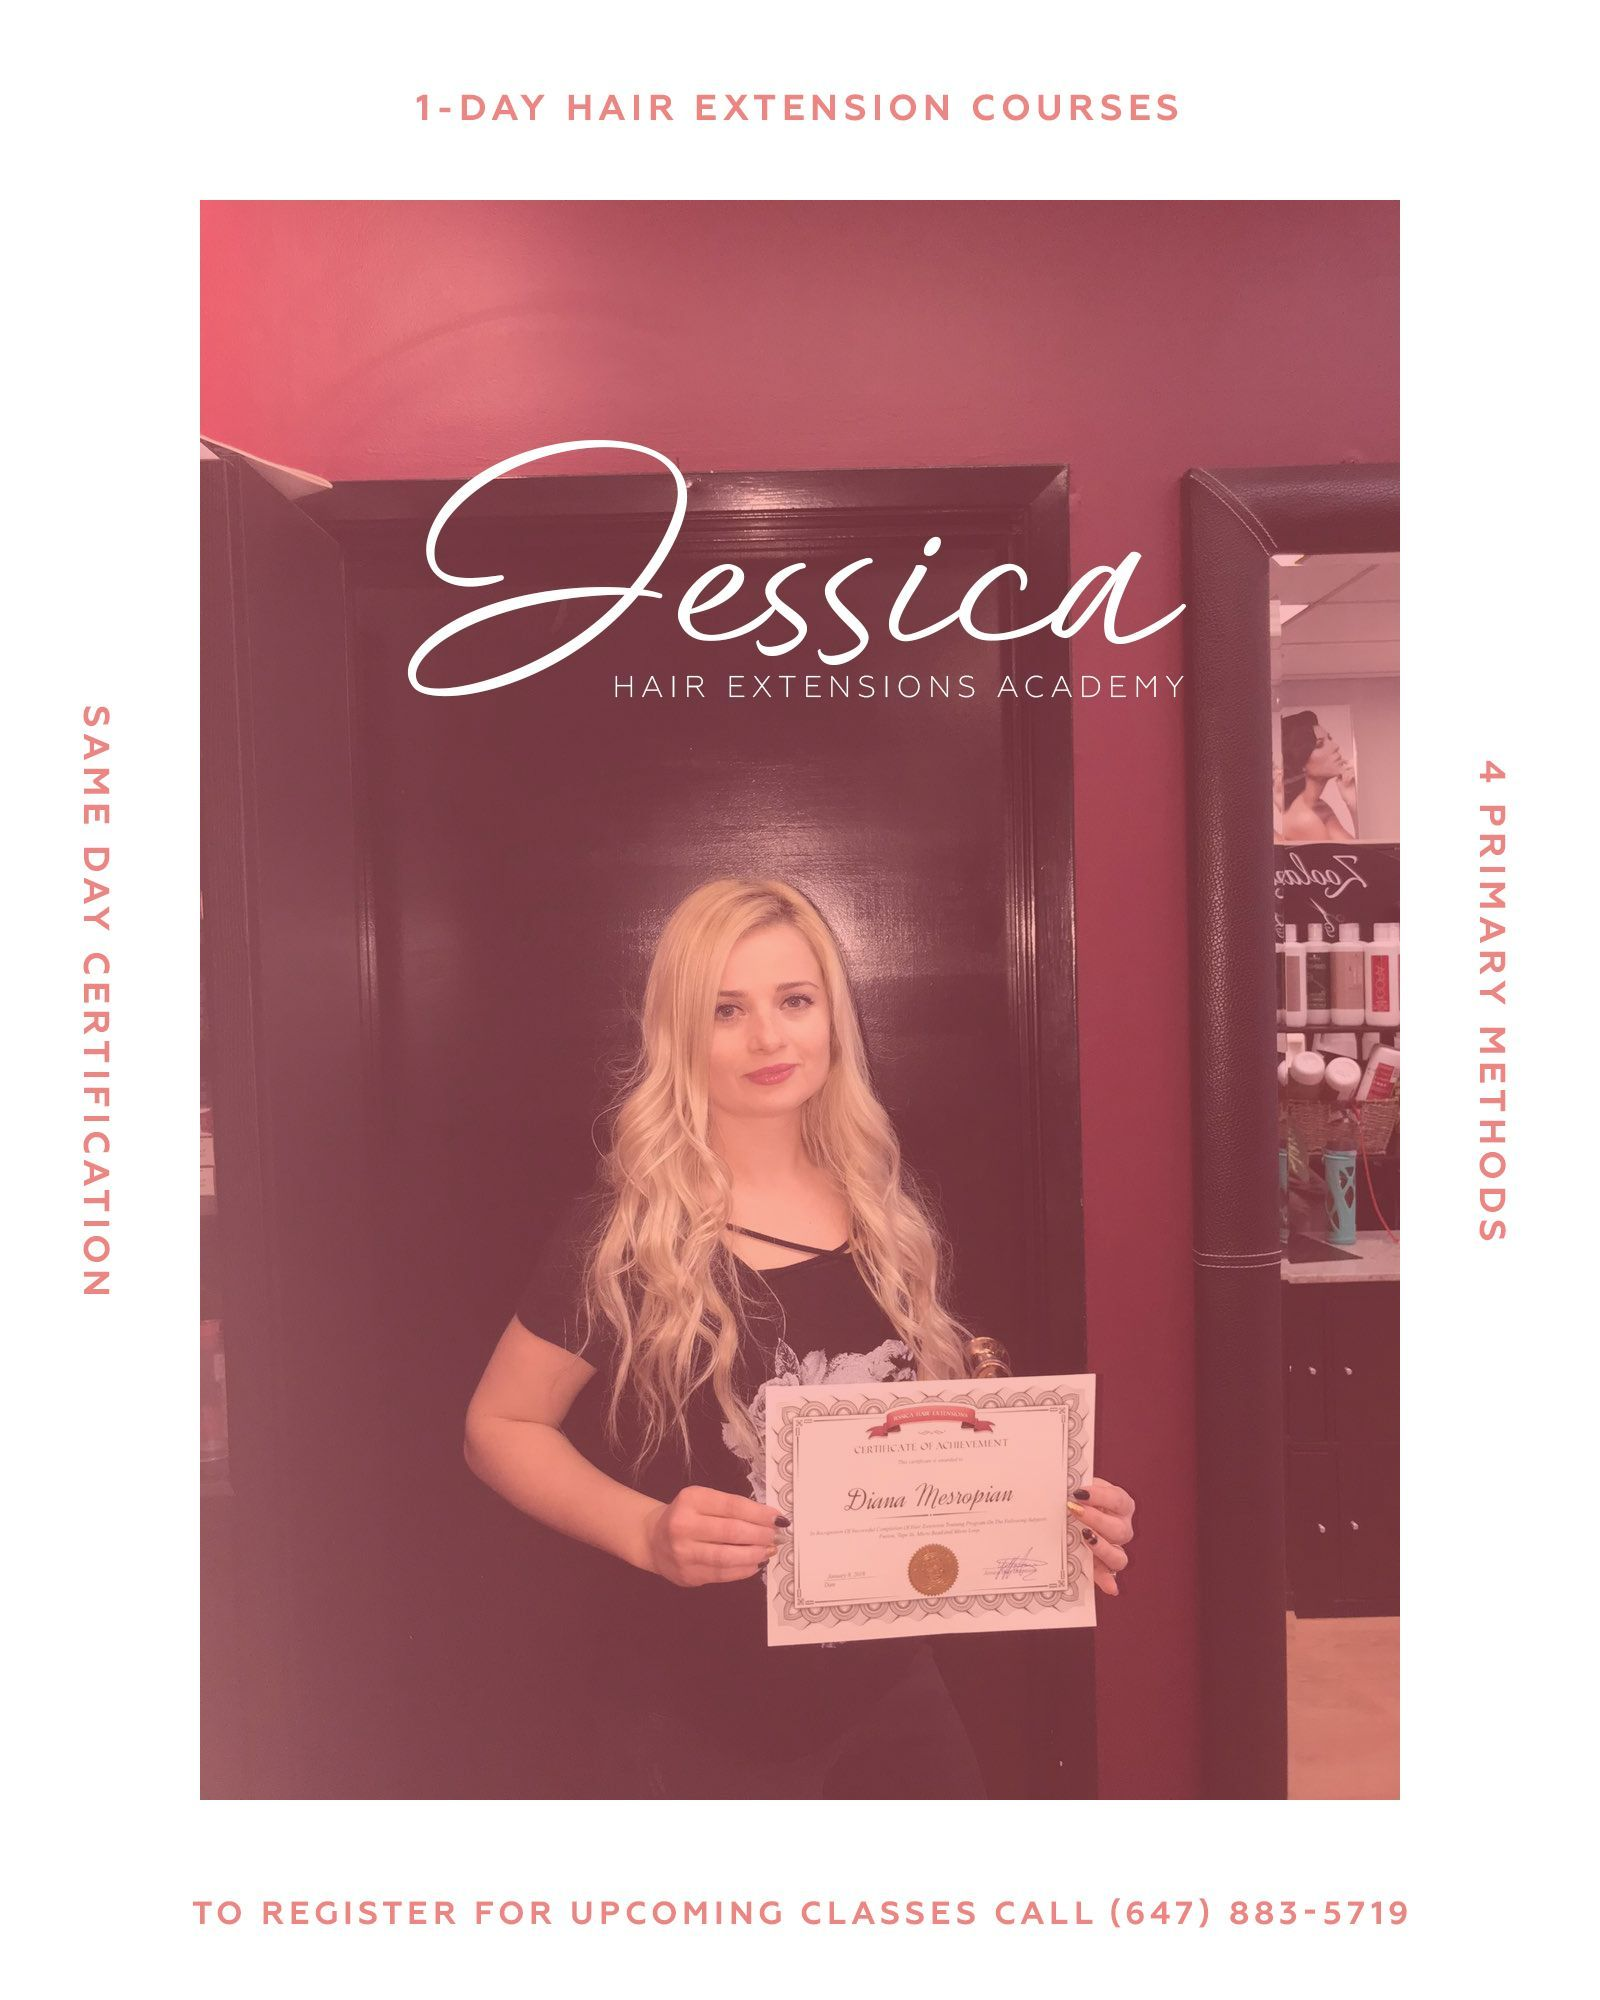 Call JessicaHairExtensions for HairExtensionTraining